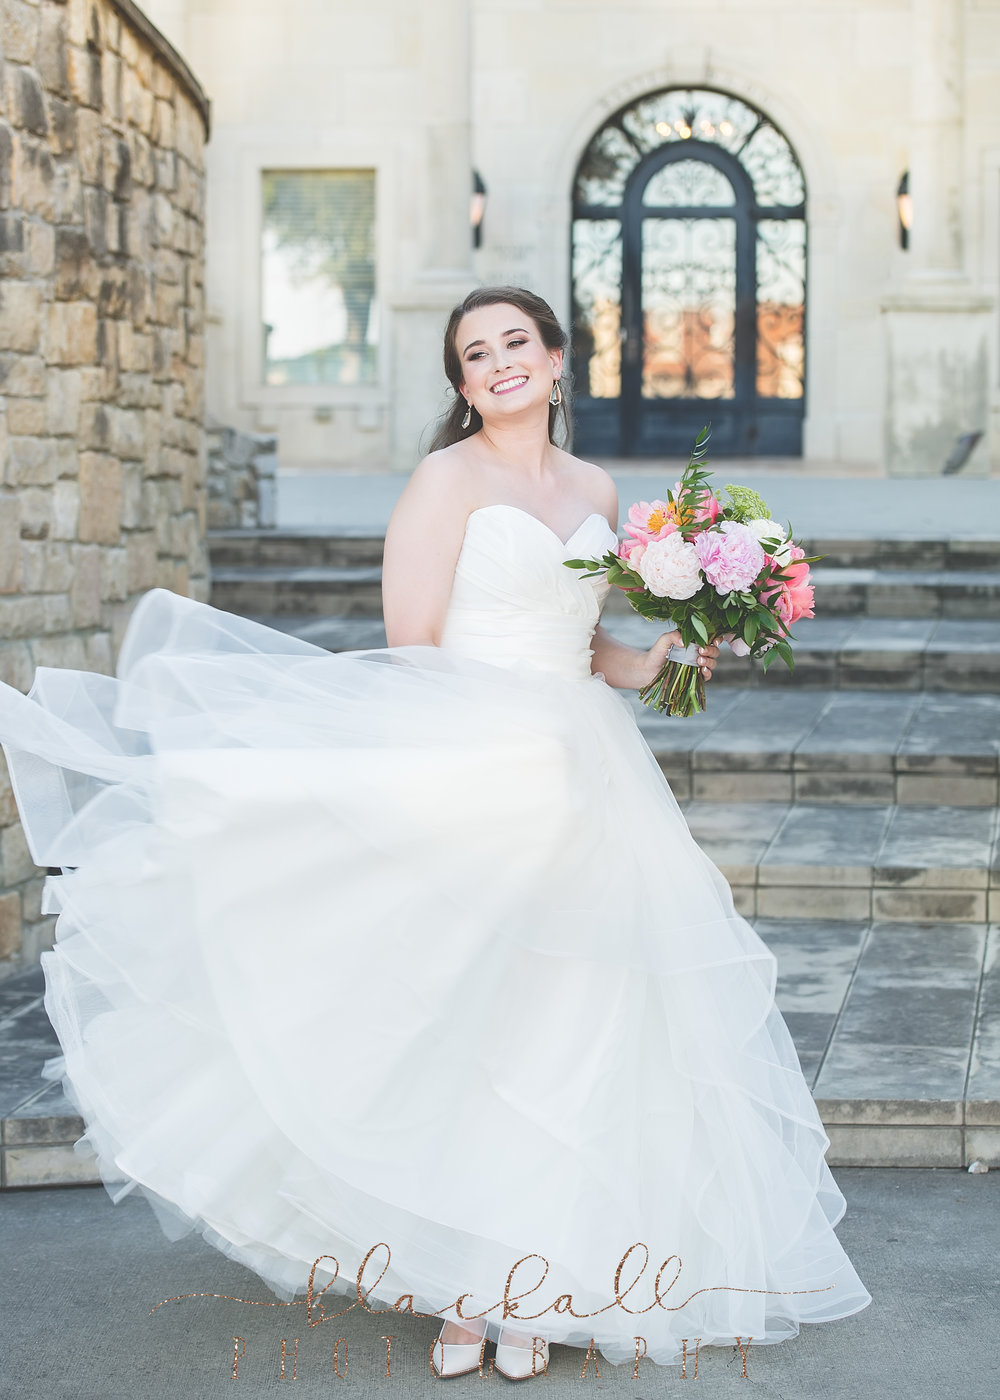 BRIDAL_BlackallPhotography_11.JPG